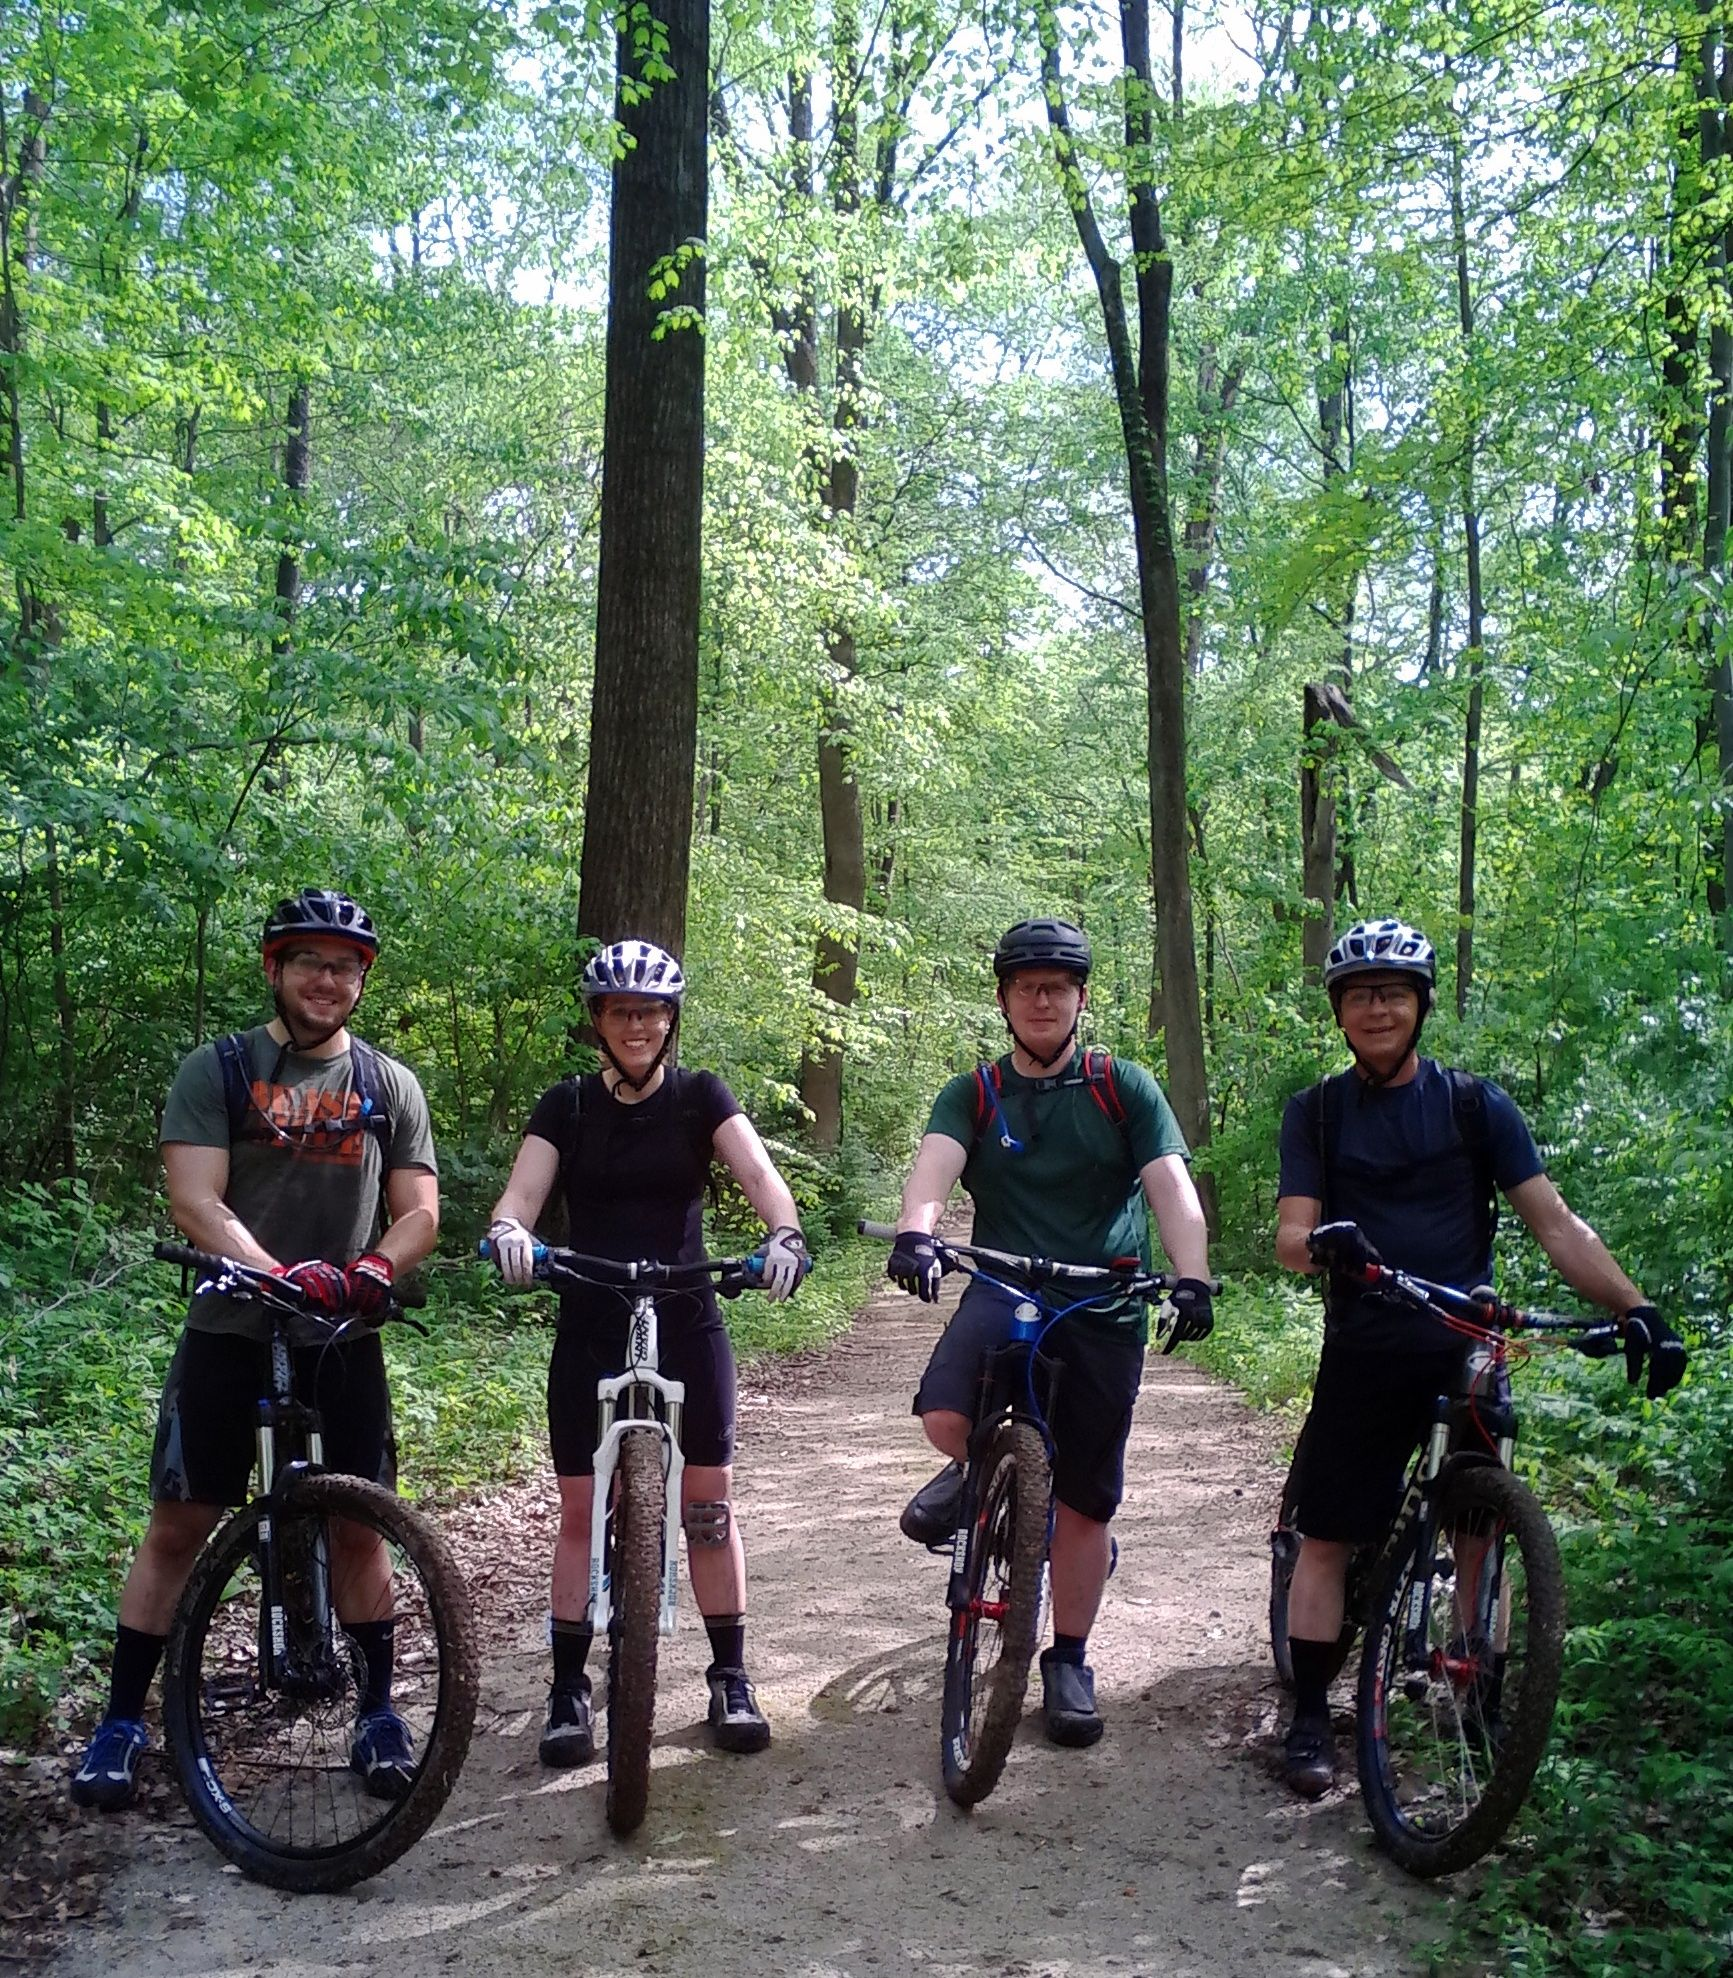 Hayes Arb Mountain Bike Trails Placed 6 In The Top 10 Indiana